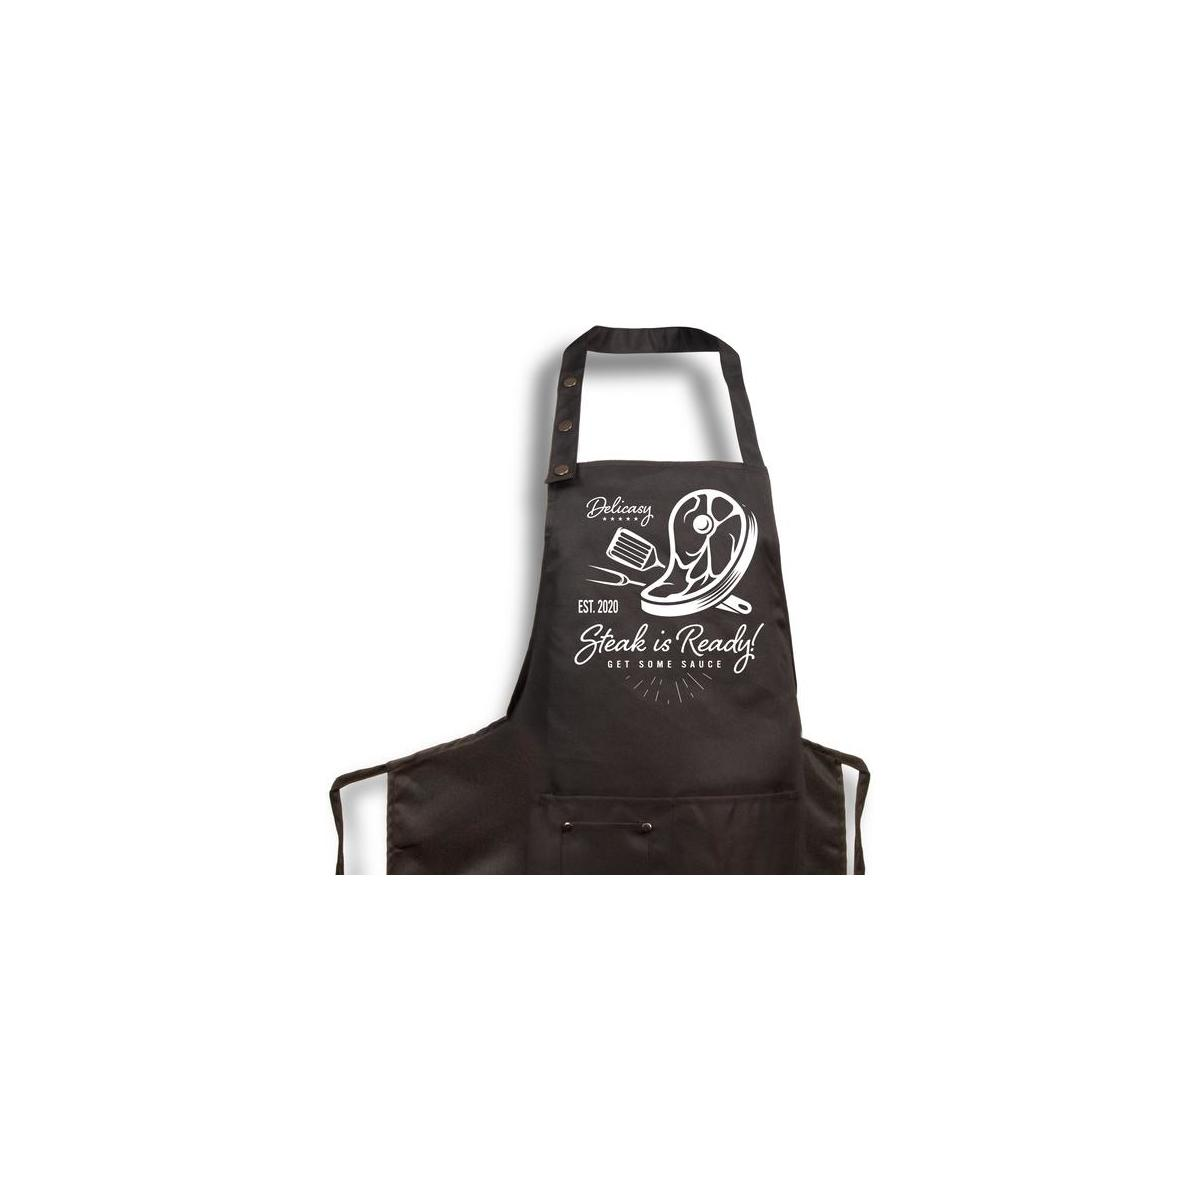 Funny Aprons - Choose 1 out of 10 new designs  - Cooking Grilling Chef Apron for Men or Women - Great Gift Item